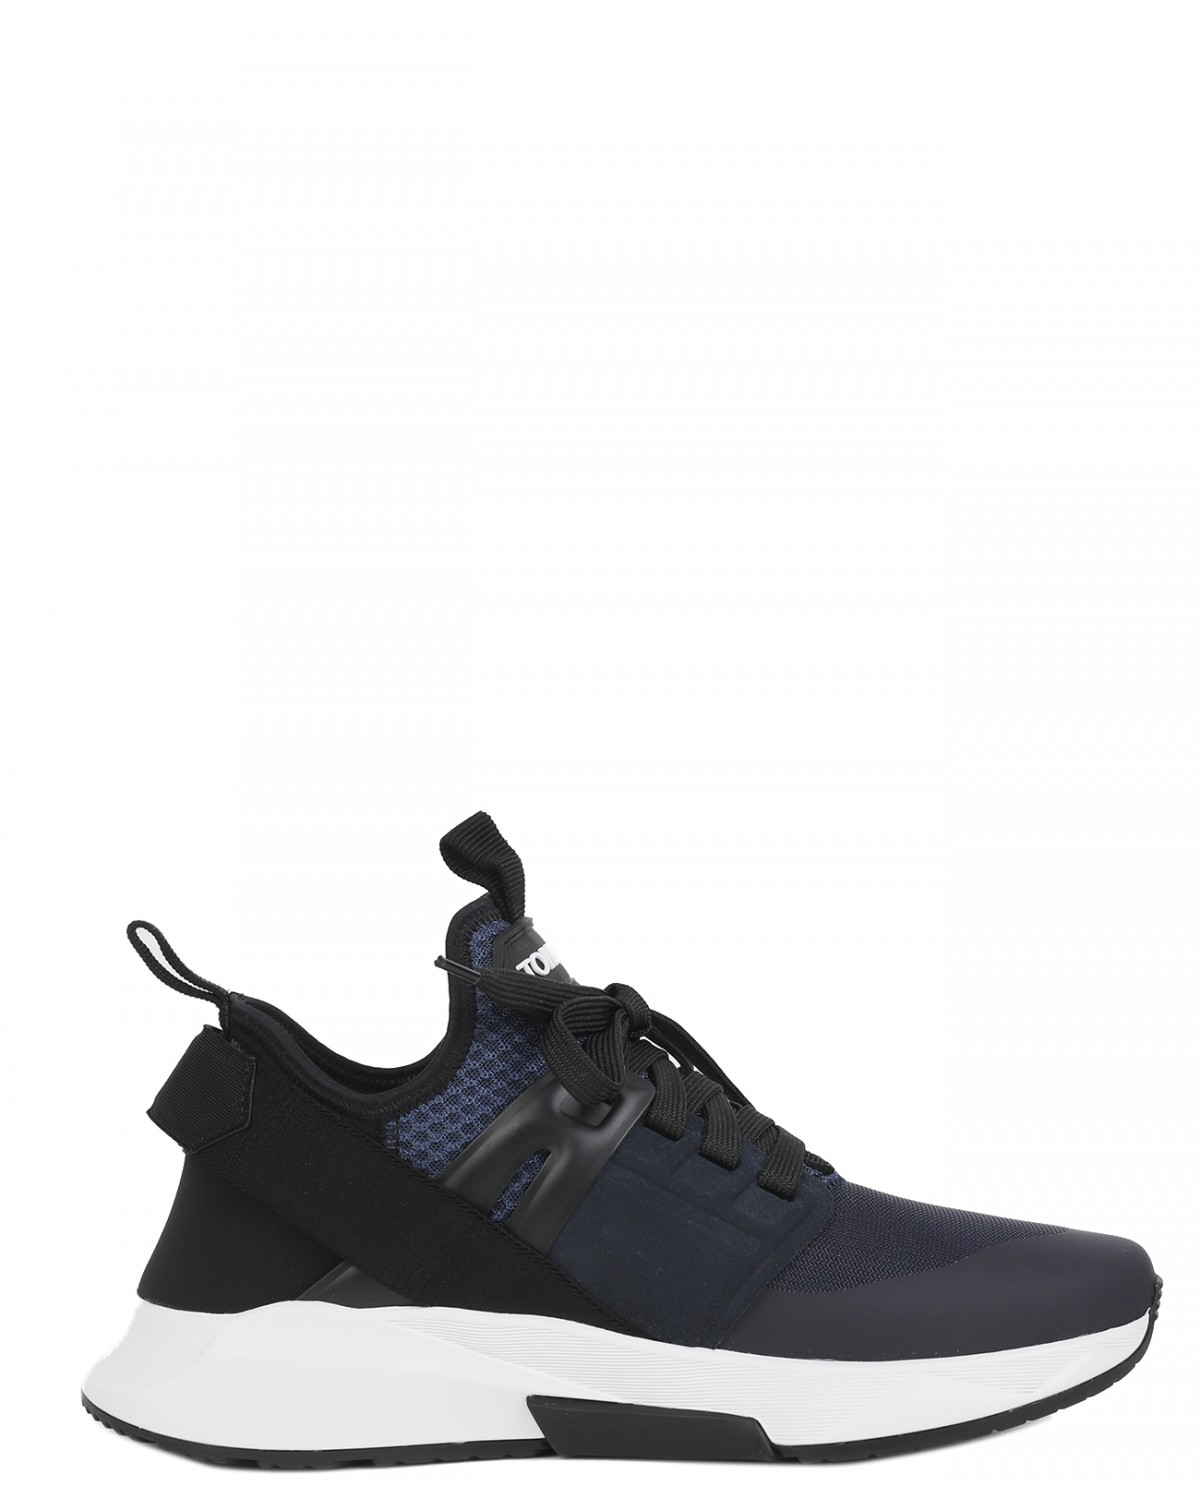 Tom Ford blue Jago sneakers